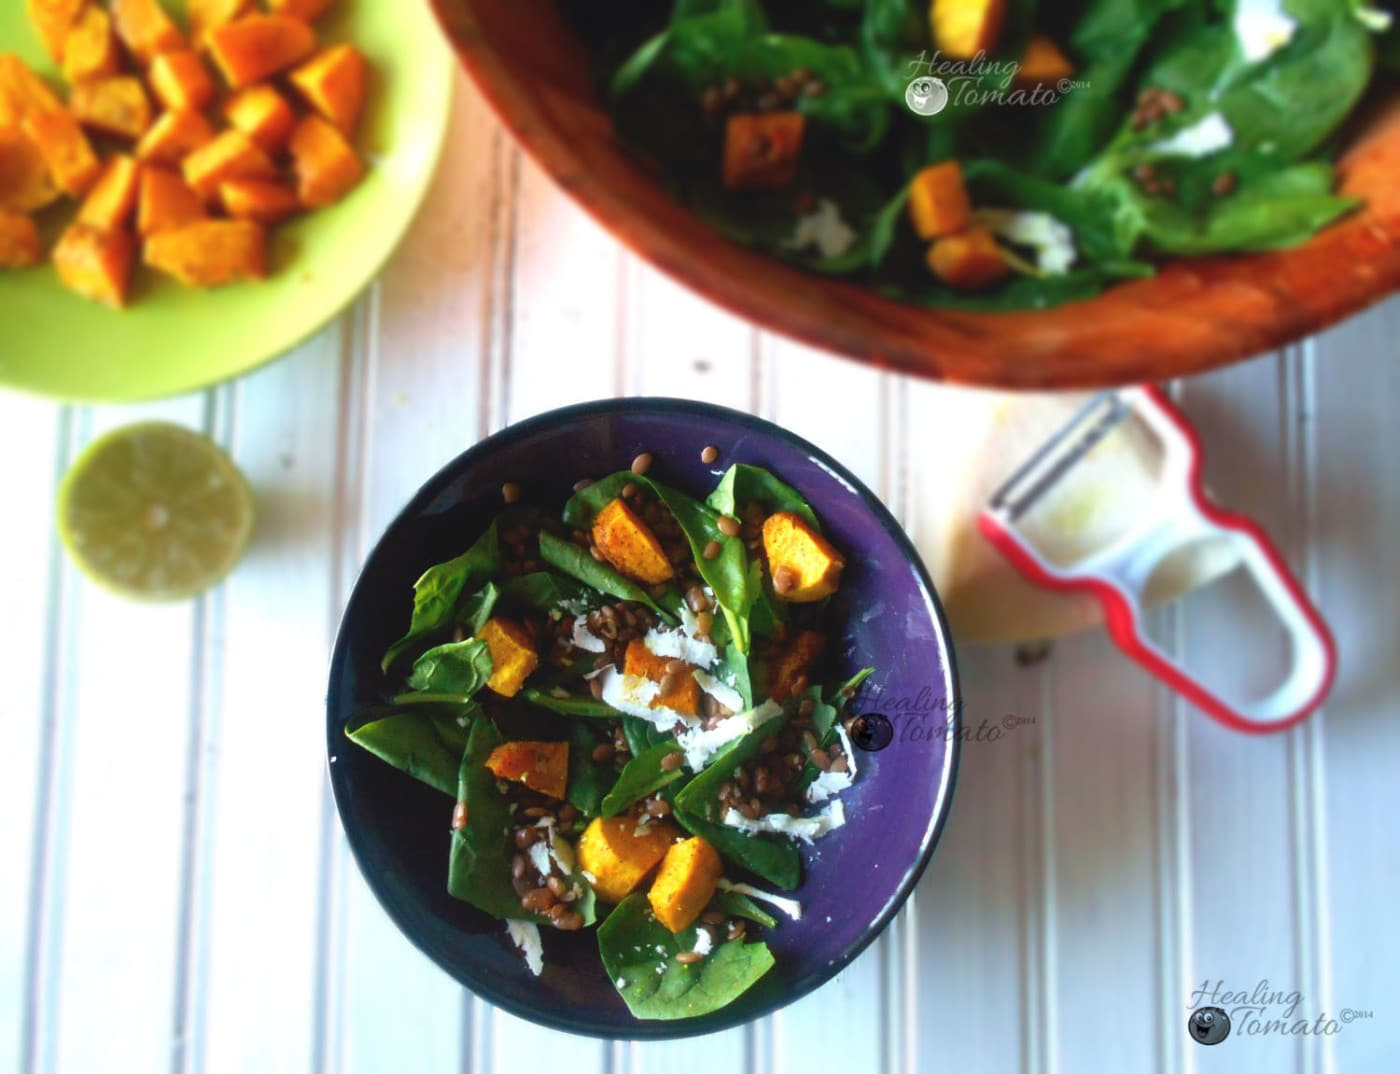 Overhead view of spinach lentil salad withspiced pumpkins